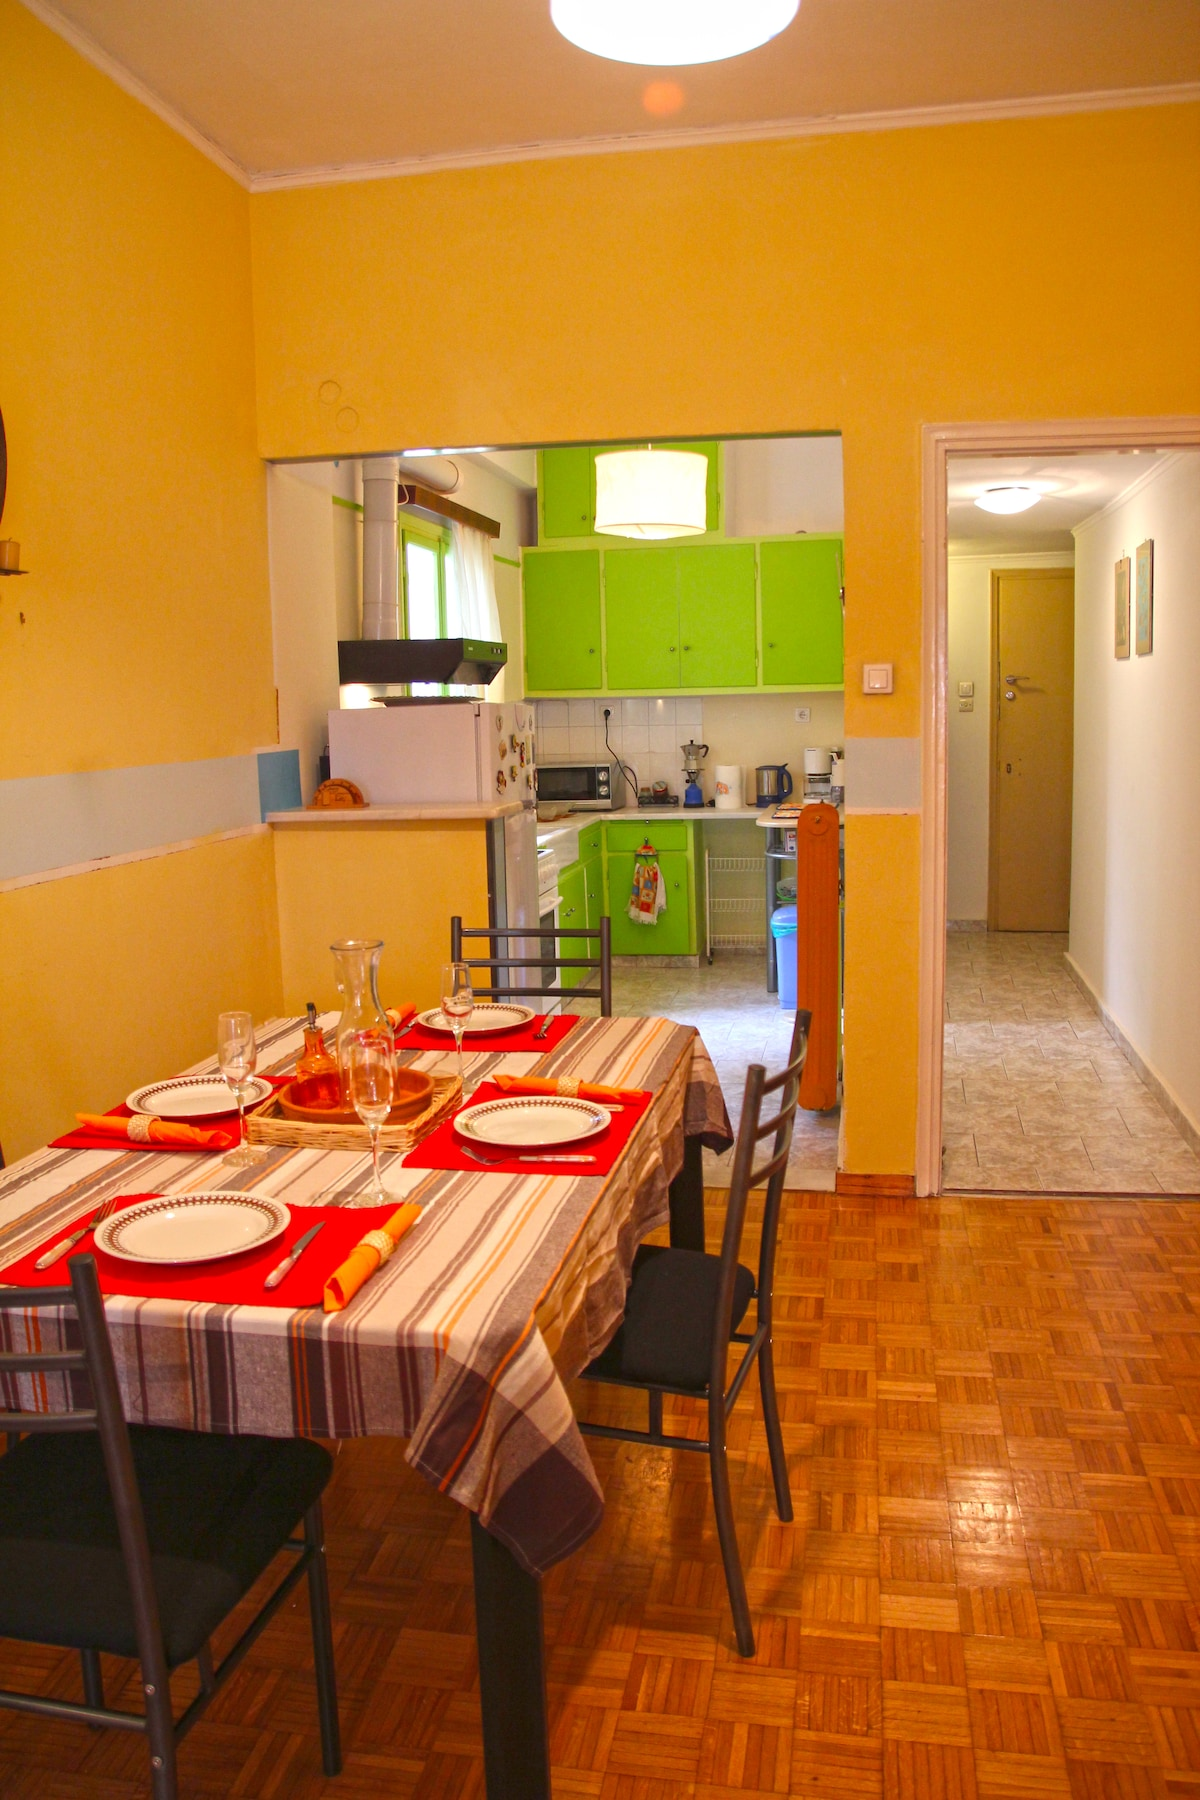 This is the dining room and view to the colorful kitchen.